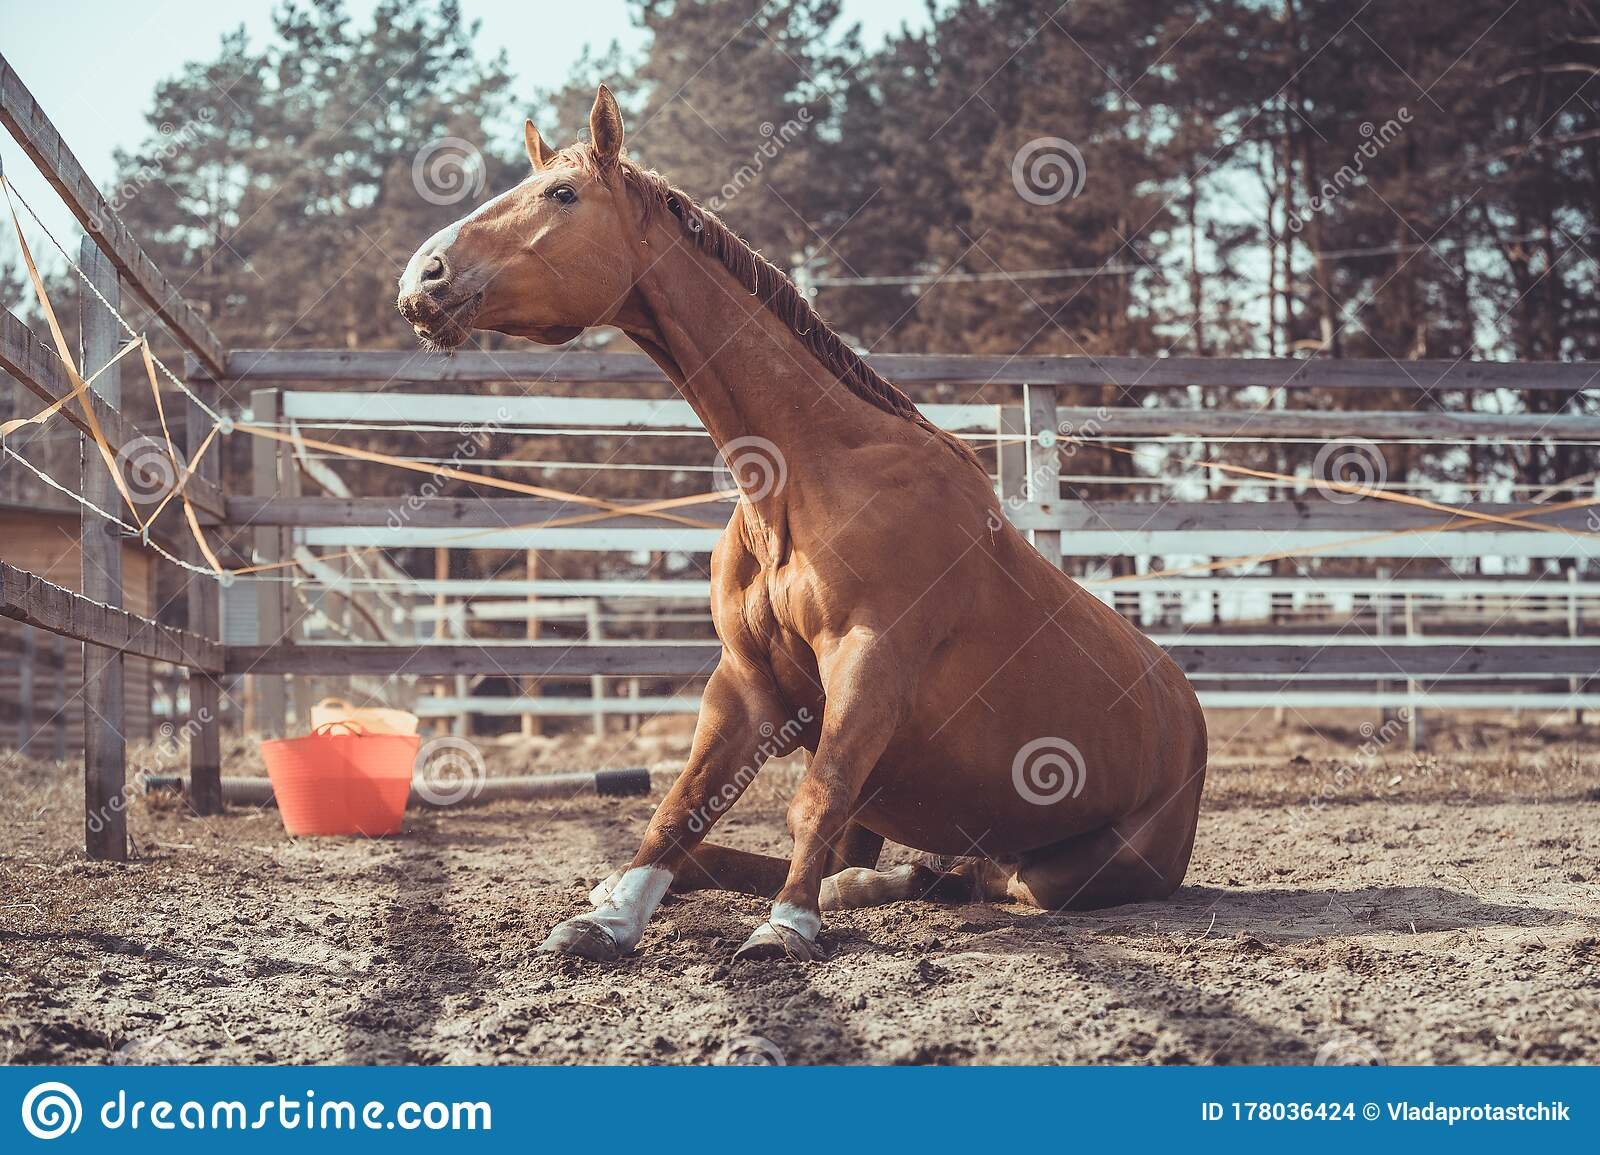 1 059 Funny Chestnut Horse Photos Free Royalty Free Stock Photos From Dreamstime